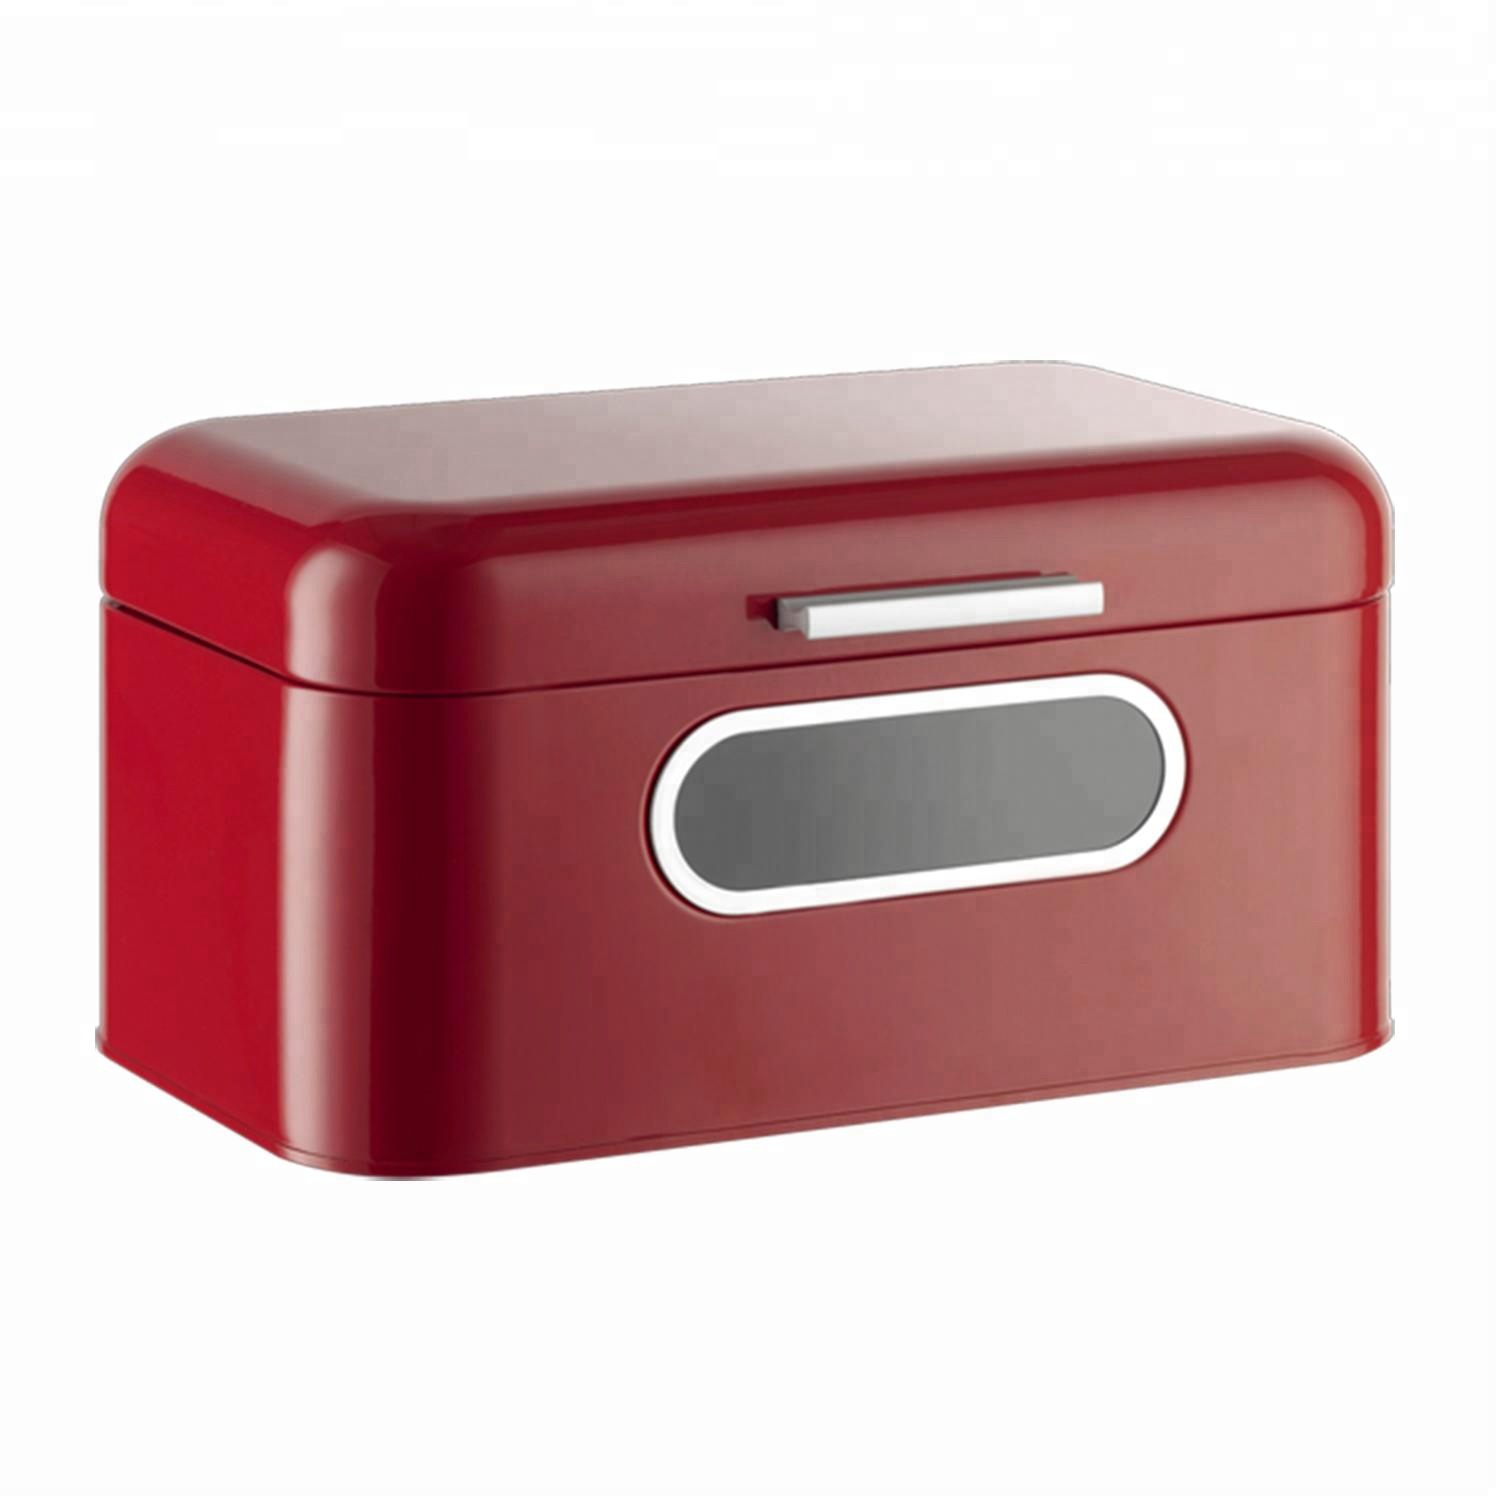 Kitchen Counter Bread Box   - Red Bread Bin, Retro Storage Container with Front W